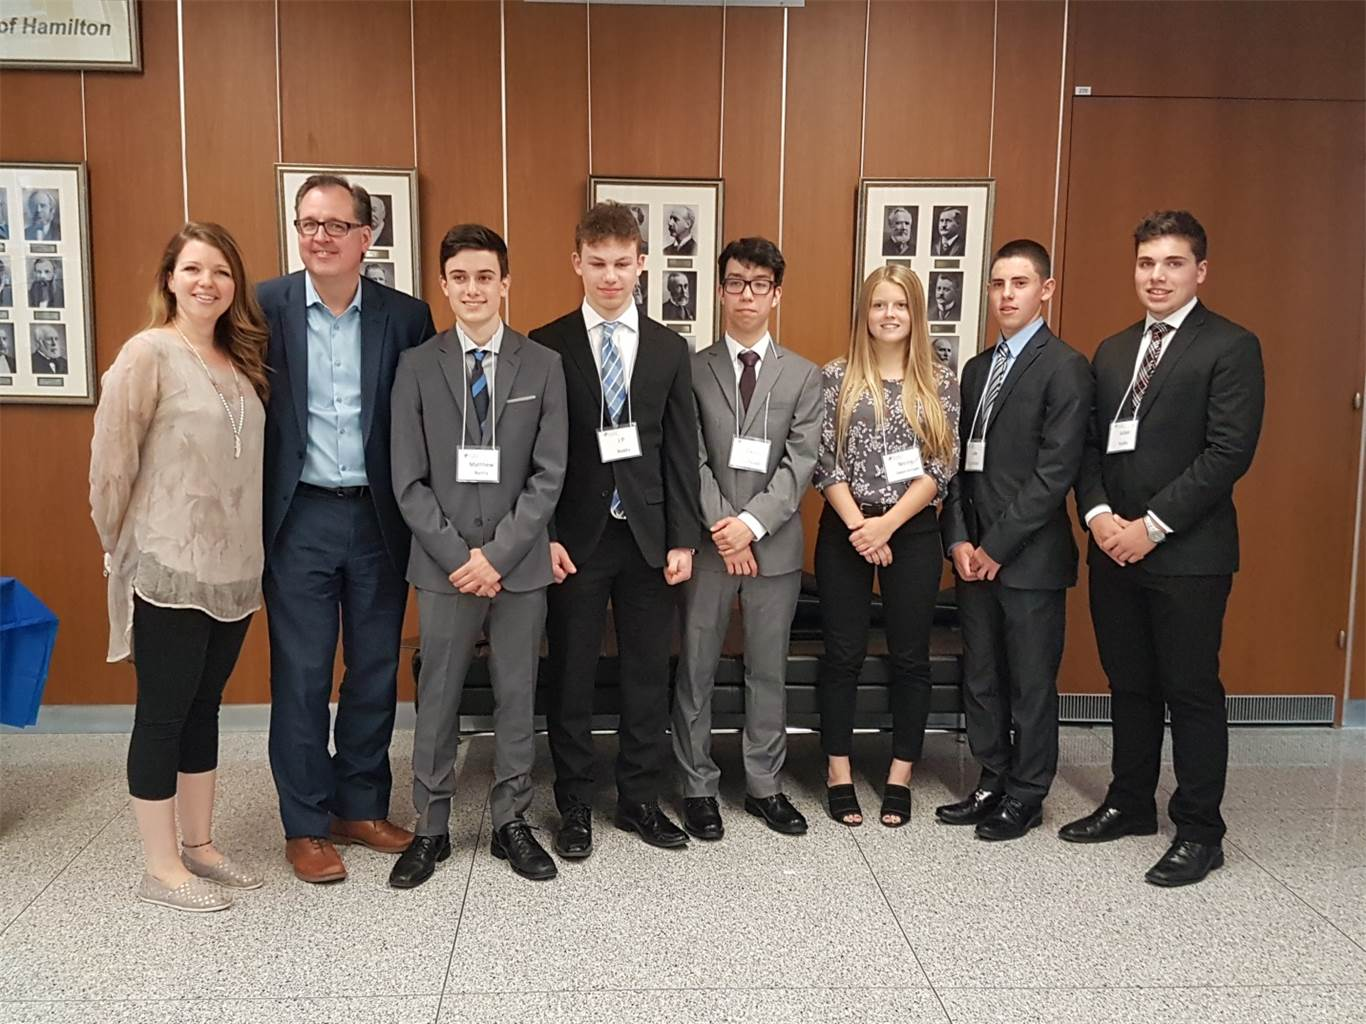 Left to Right: Industry Professional and Class Business Mentor Jennifer Bitner, Superintendent of Education Morris Hucal, Matthew Fticar, JP Parente, Casey Gillis, Luke Del Cantero and Julian Lombardi. Photo courtesy of Gelsomina Riverso-Casella.